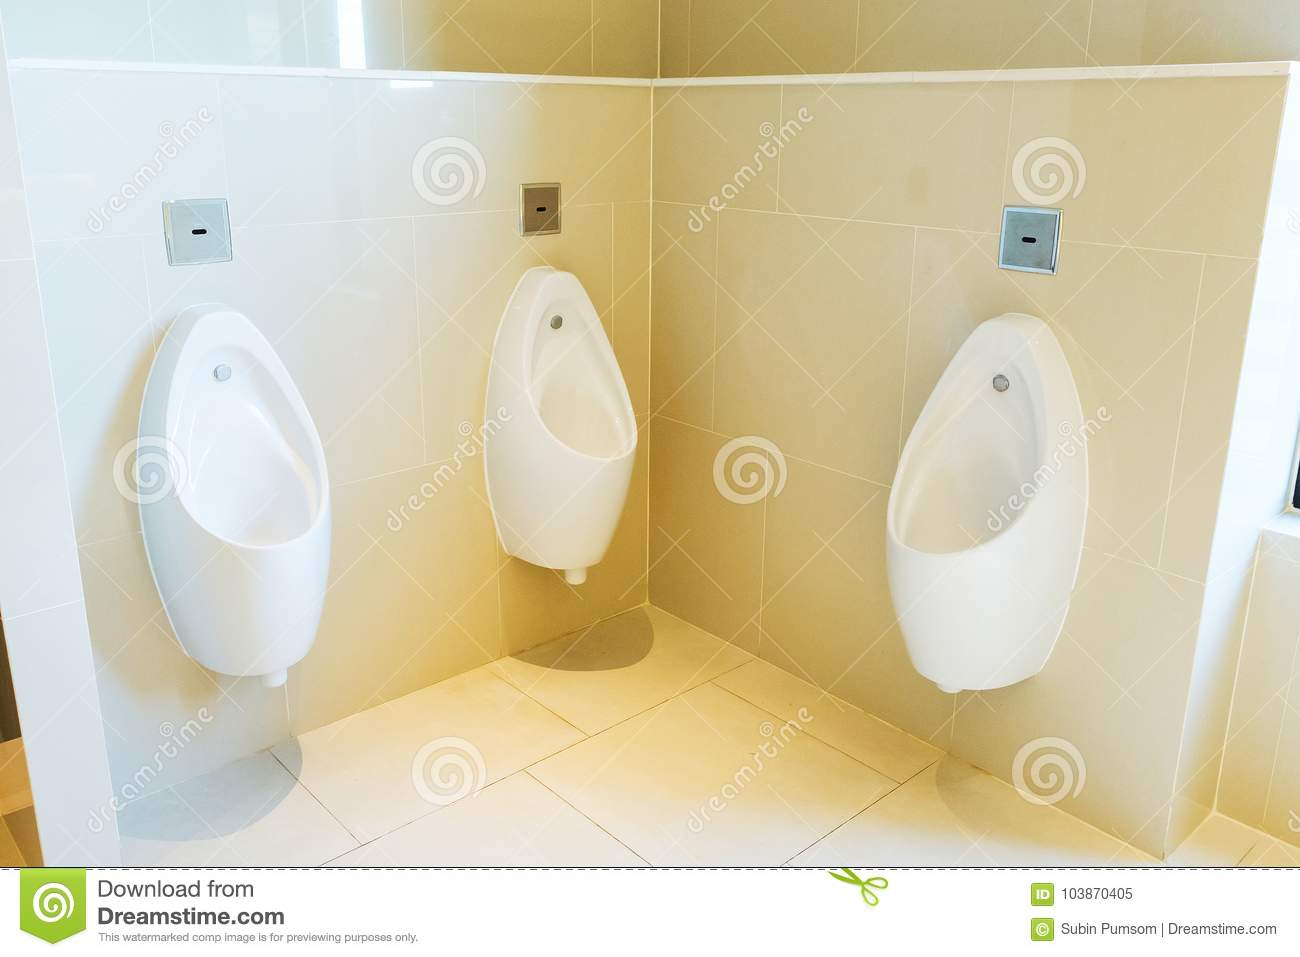 Urinals in public toilet stock image. Image of pipe - 103870405